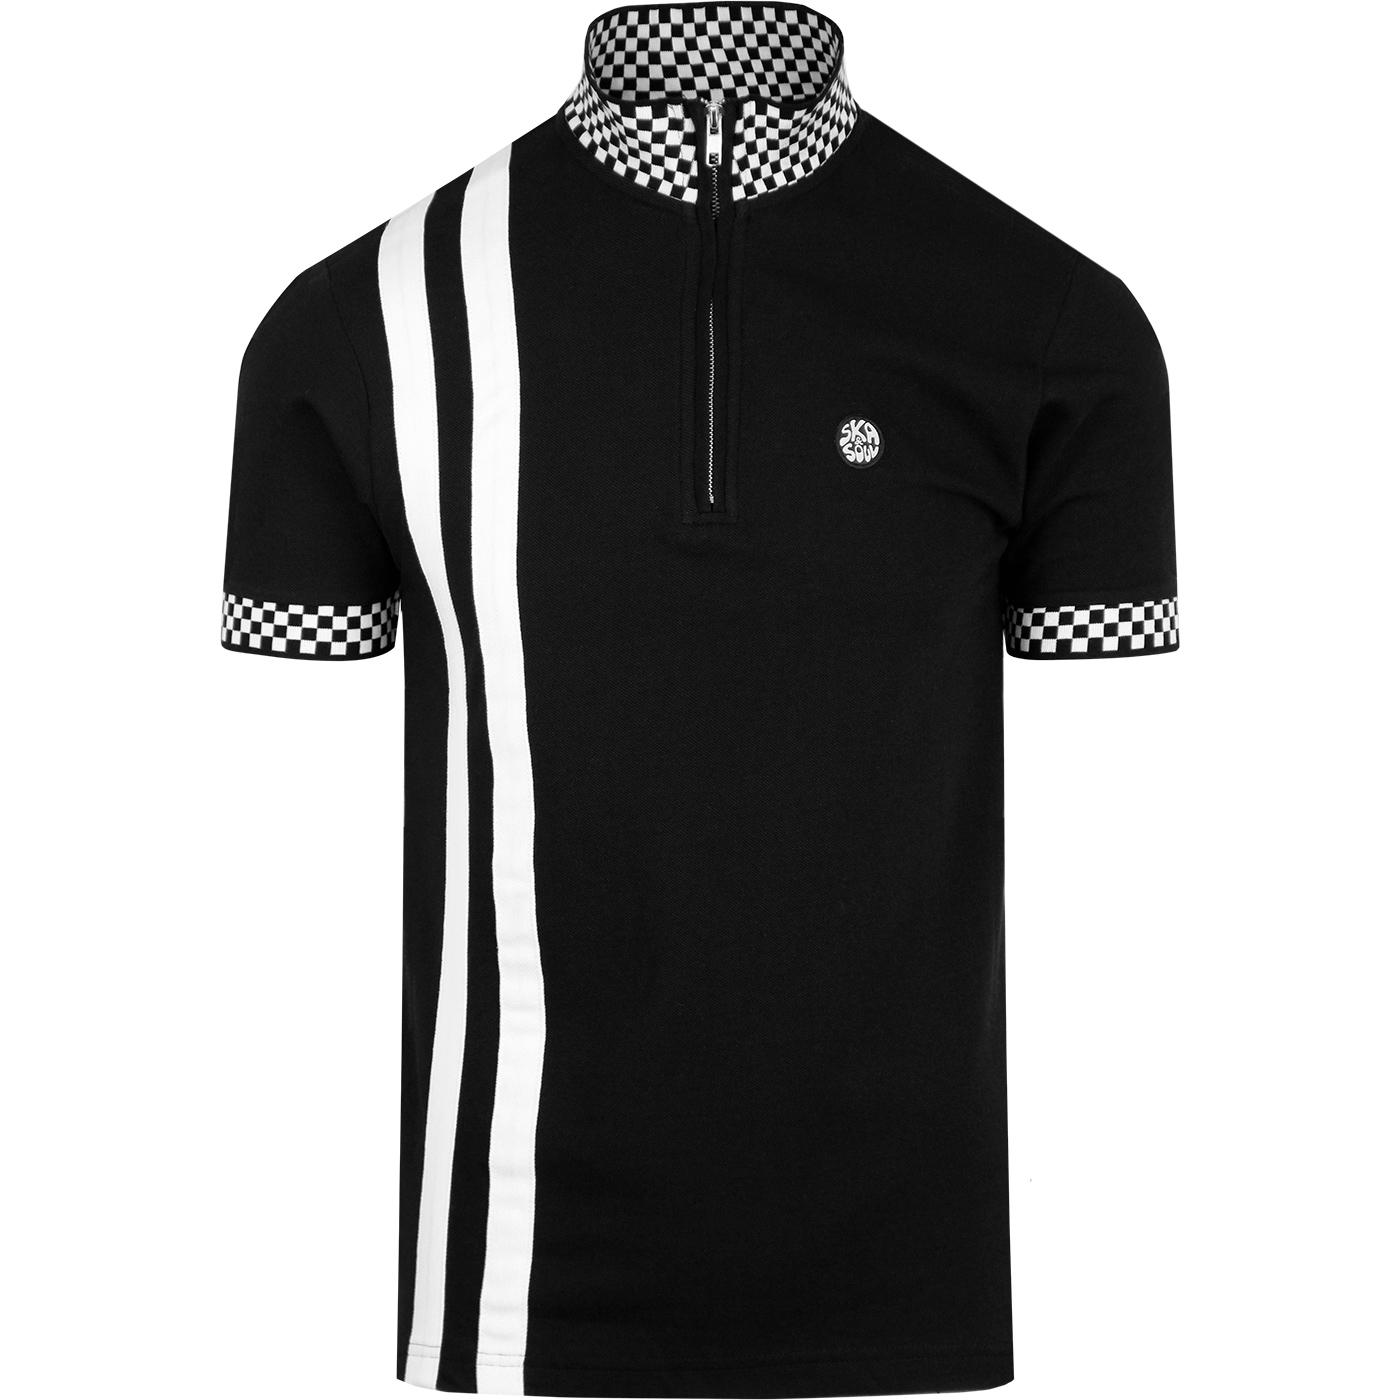 SKA & SOUL Racing Stripe Check Collar Cycling Top